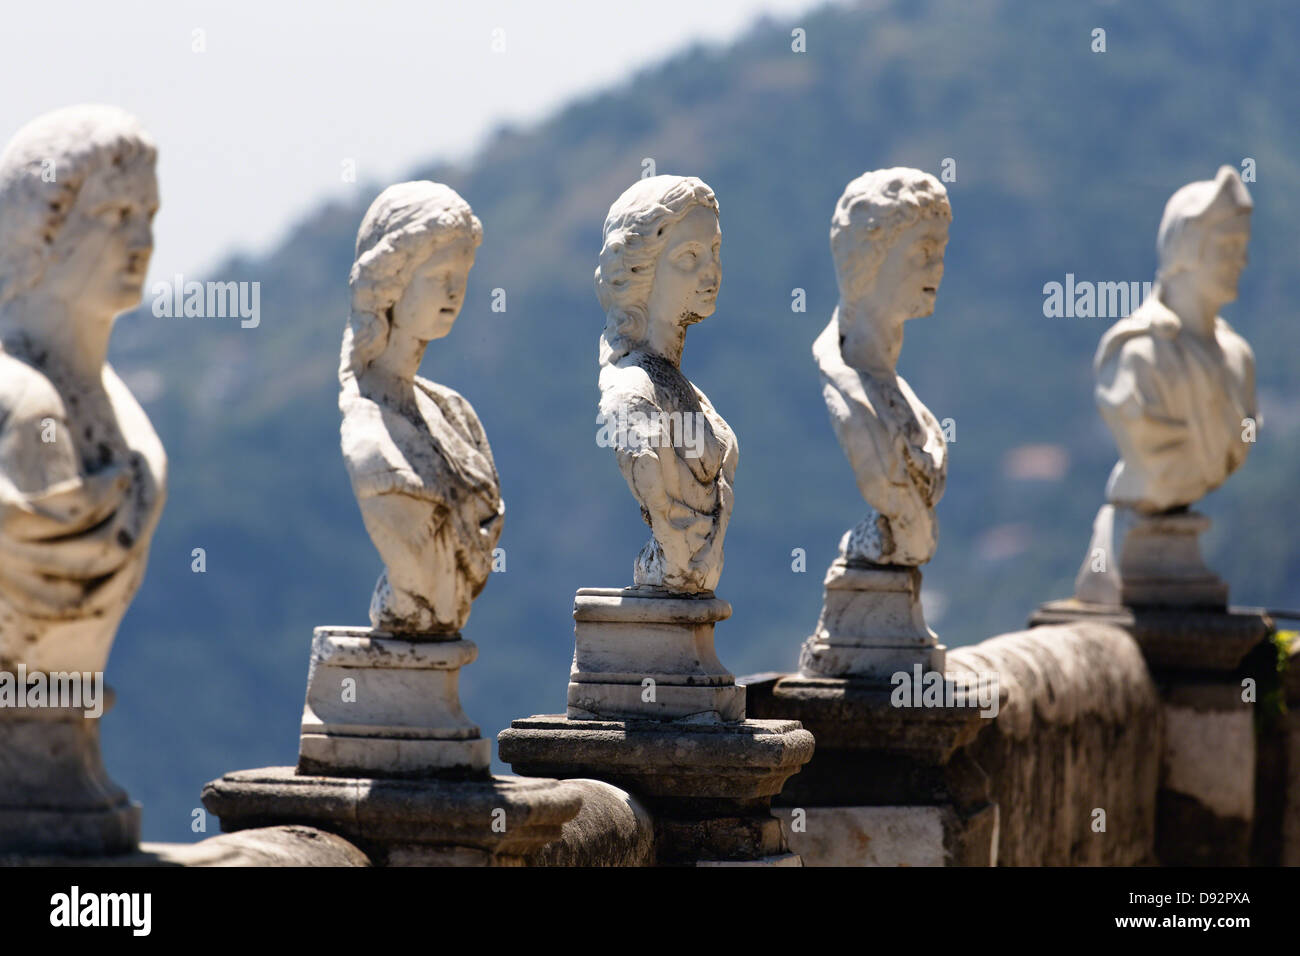 Row of busts sculptures on a ledge terrace of infinity for Terrace of infinity